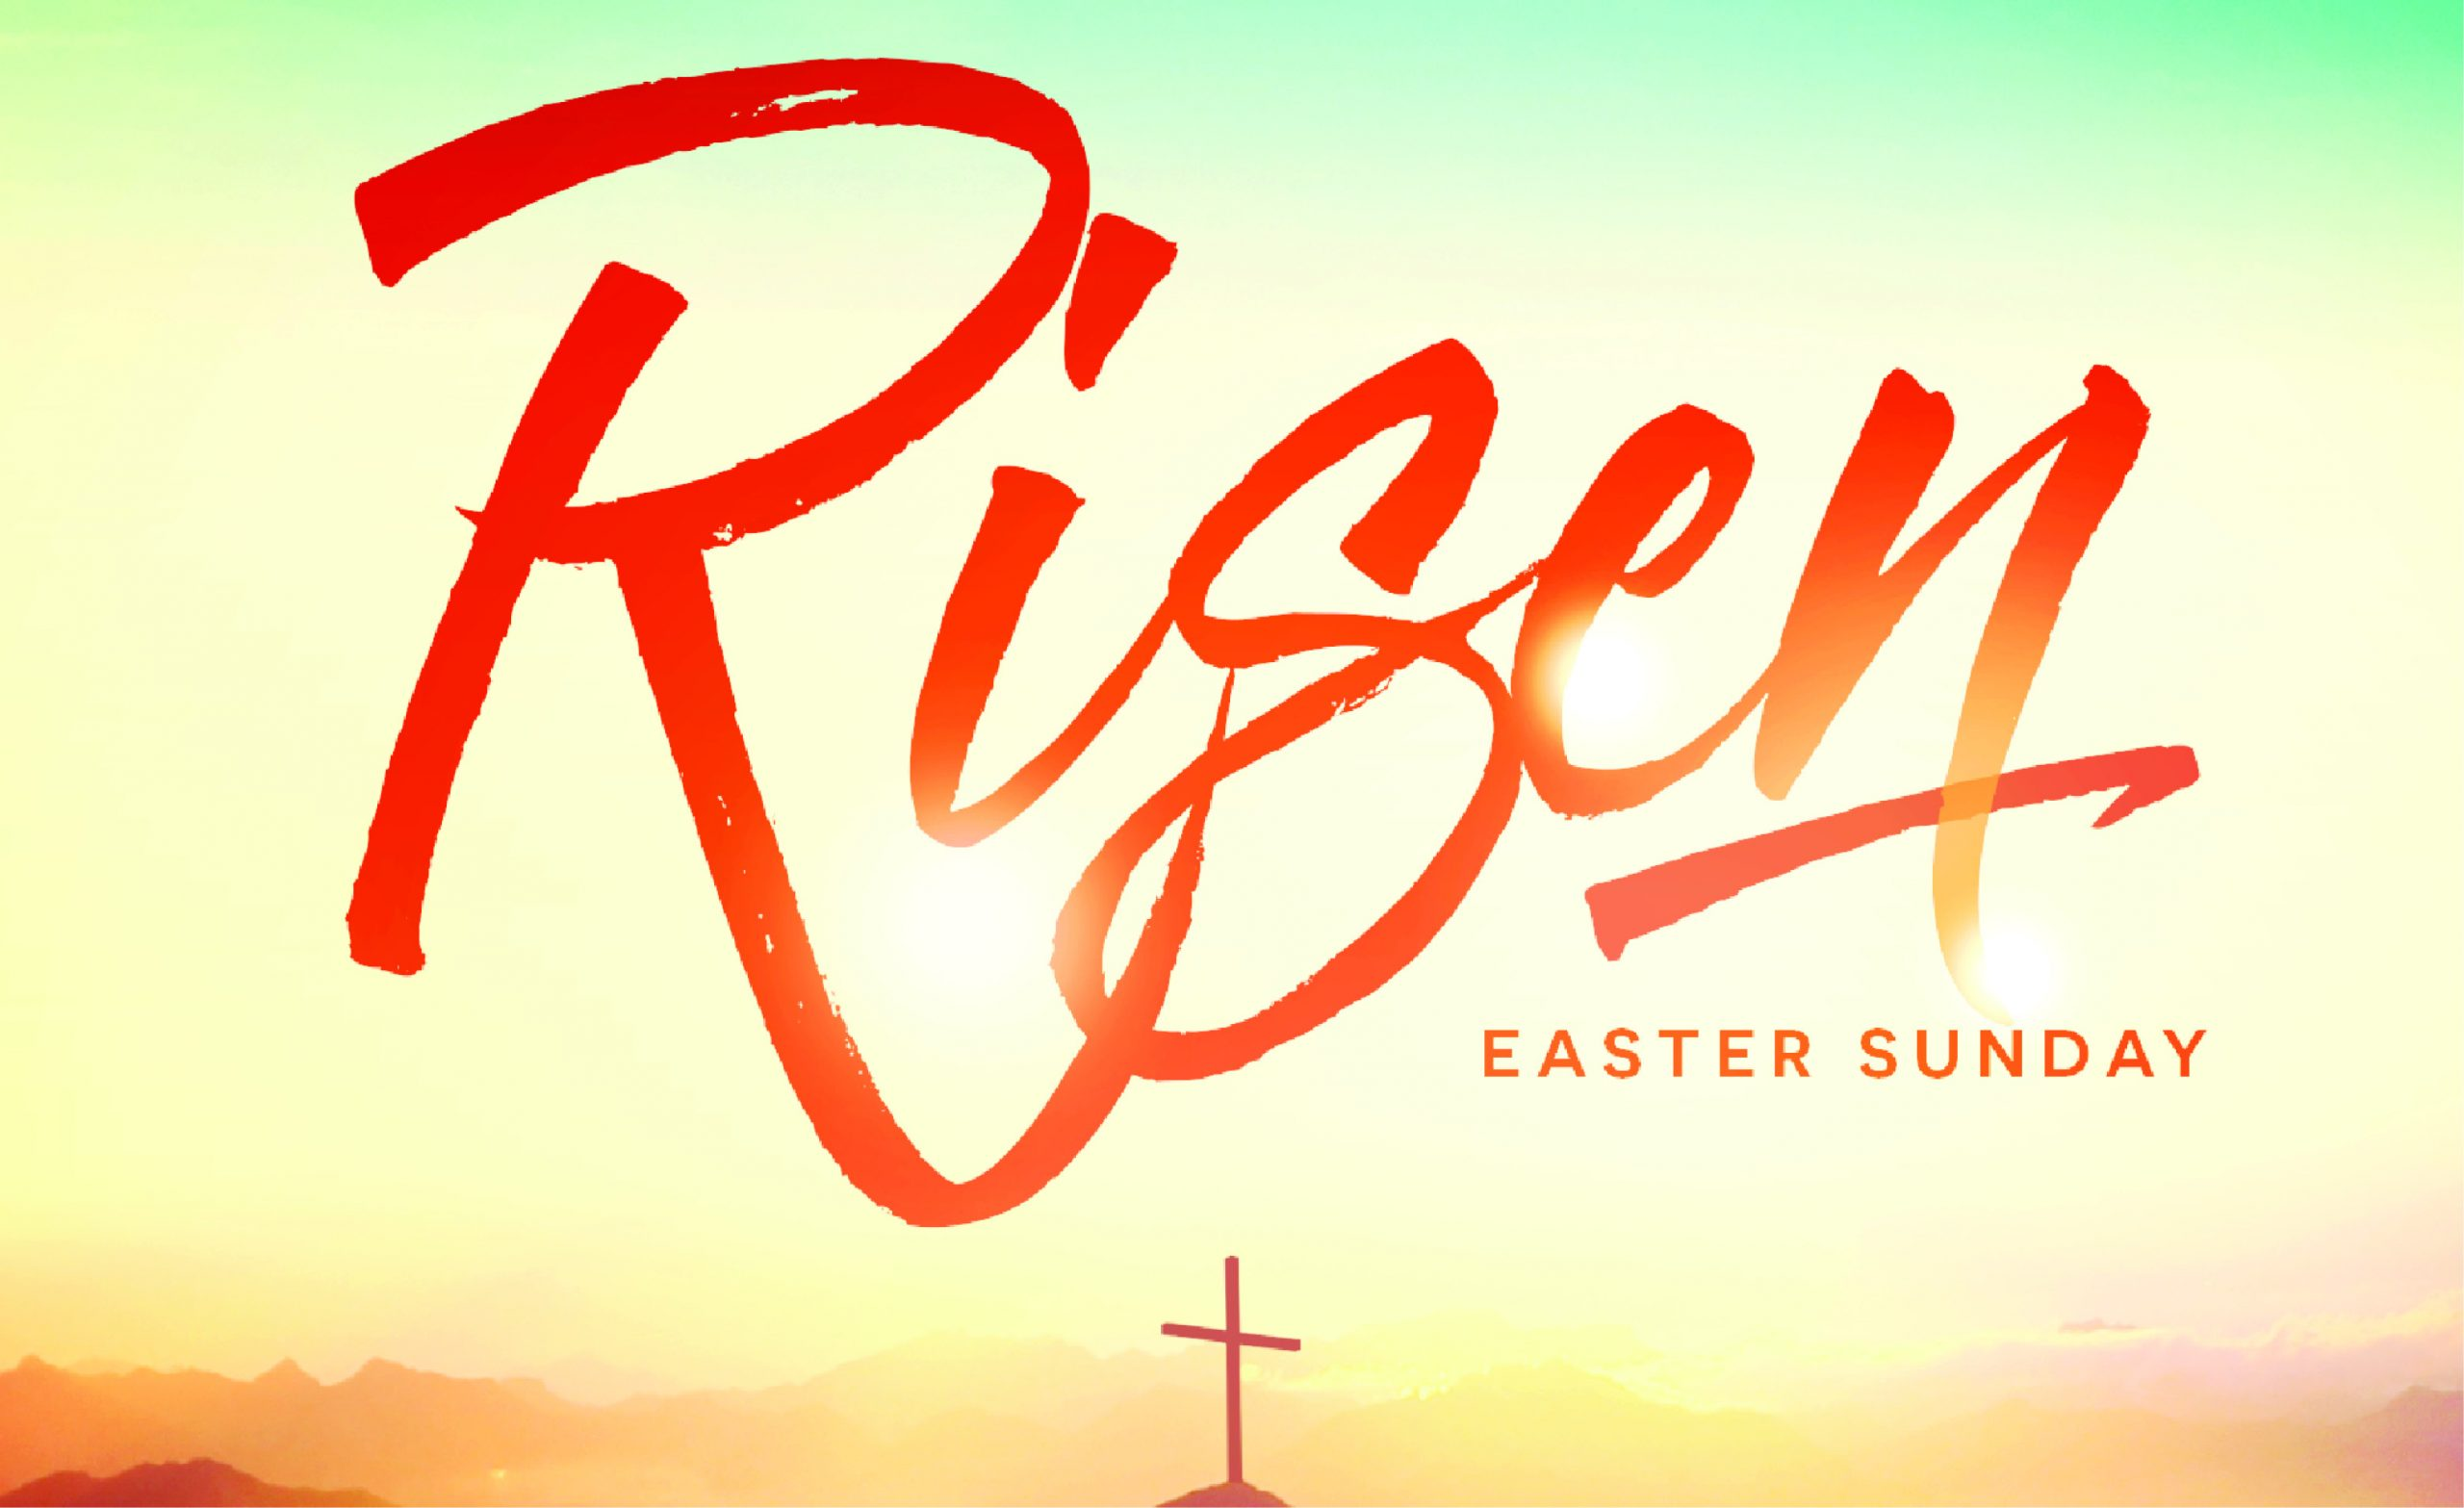 easter sunday images download